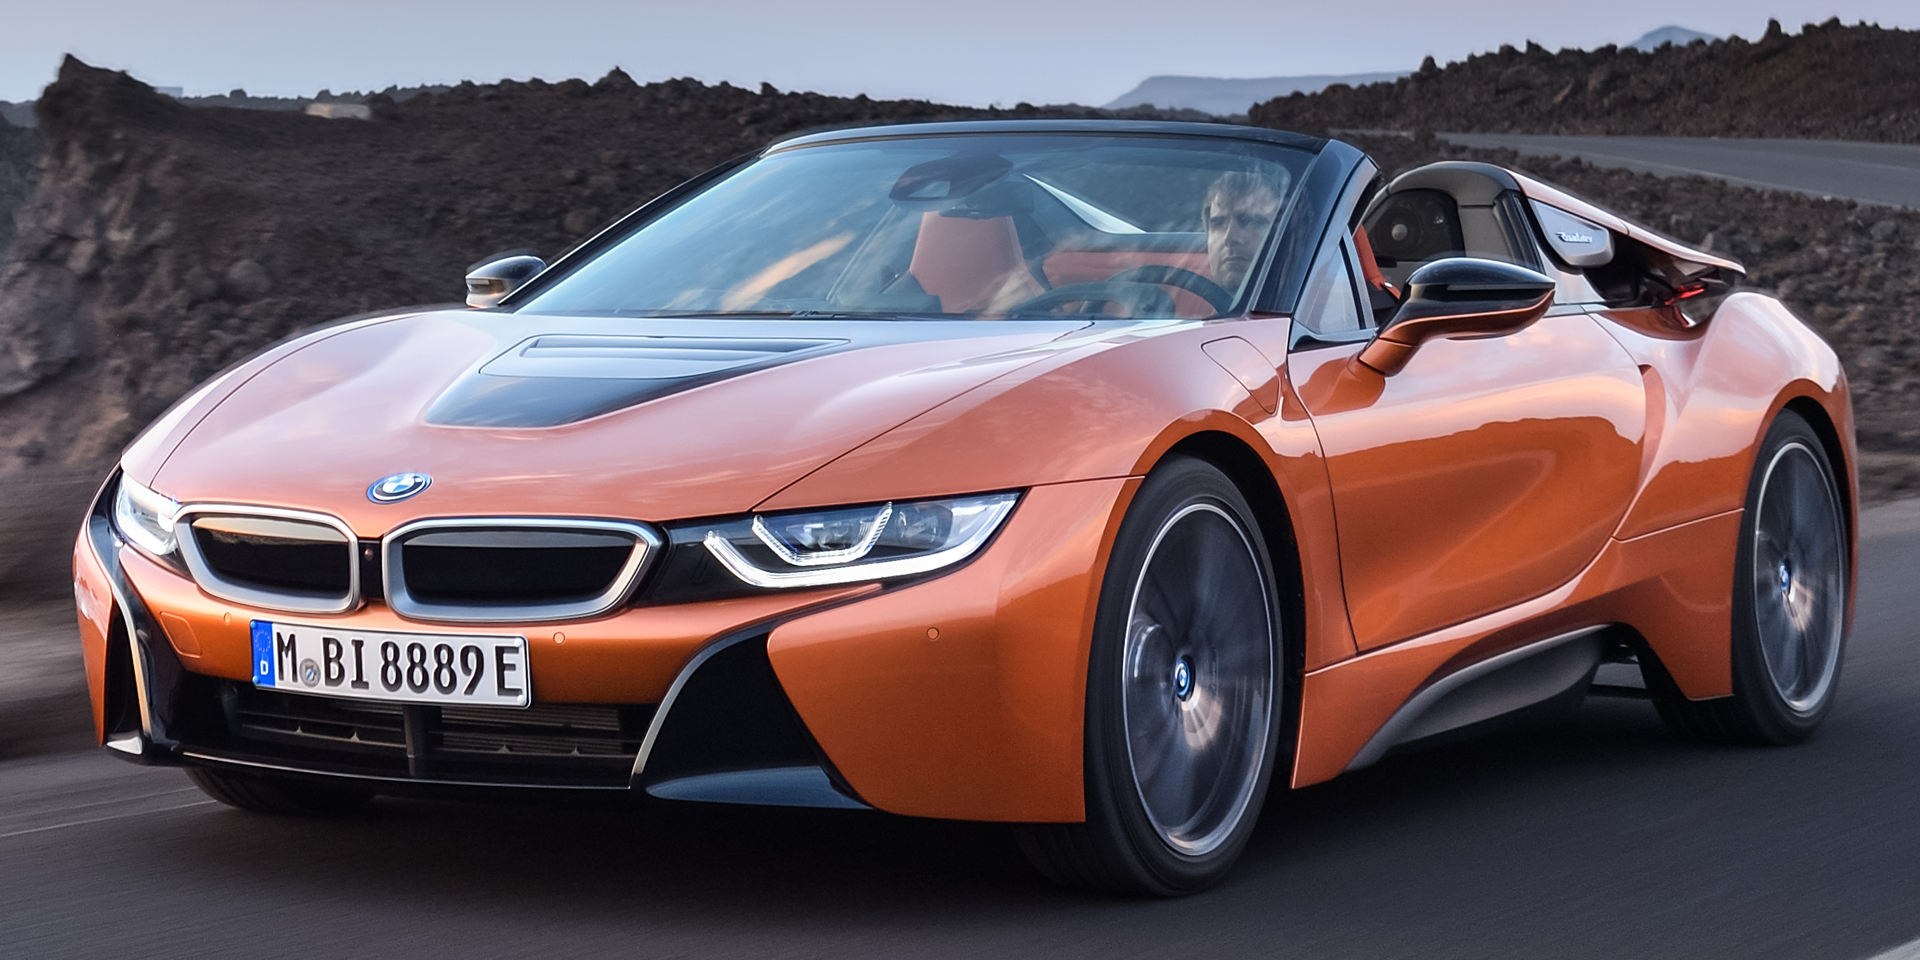 32 The Best 2019 Bmw Sports Car Images